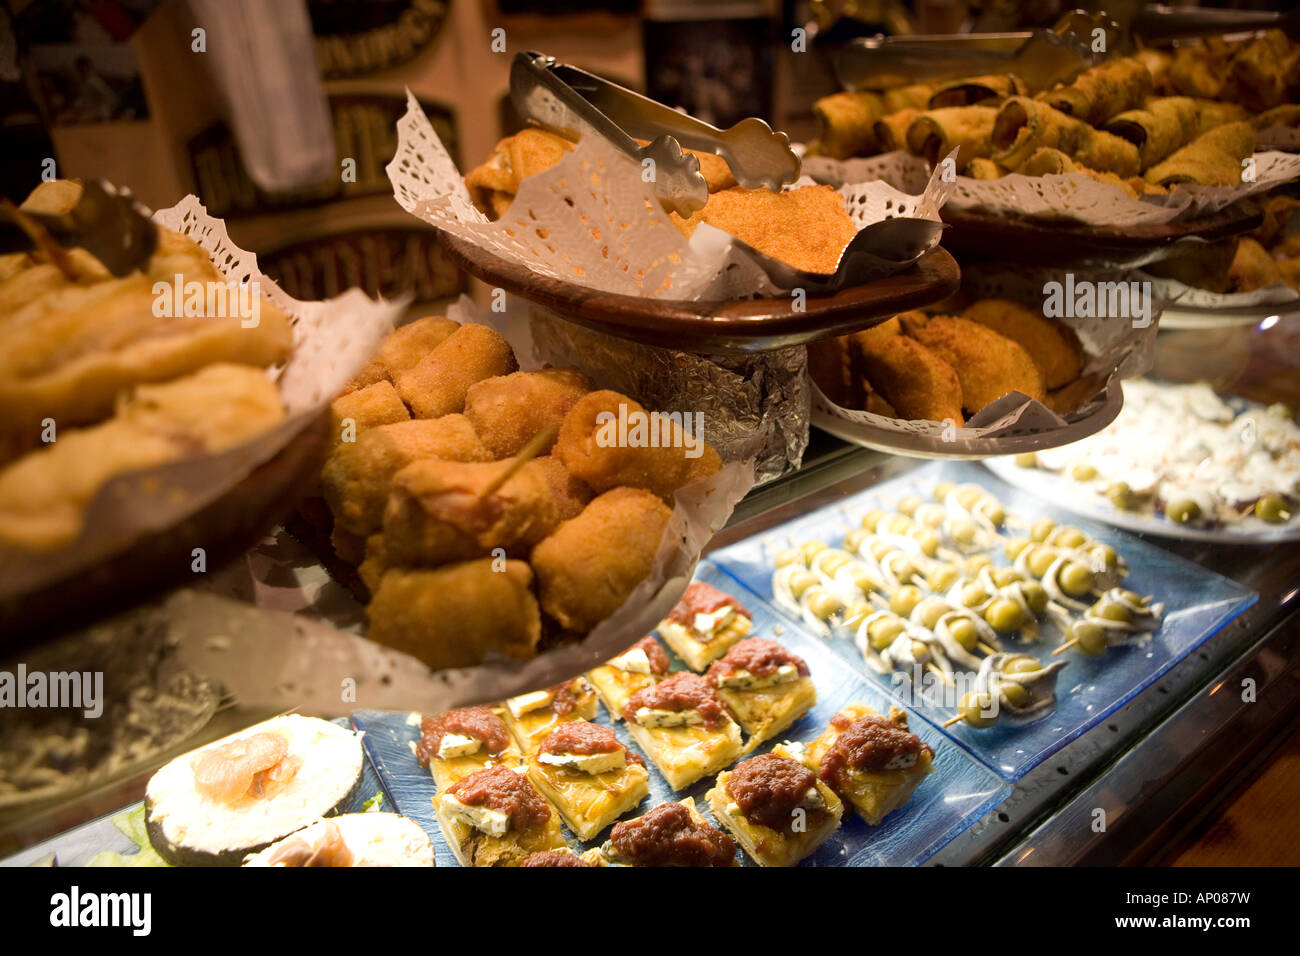 Tipical spanish food at a tapas bar in zaragoza aragon spain stock photo royalty free image for Cuisine bar tapas